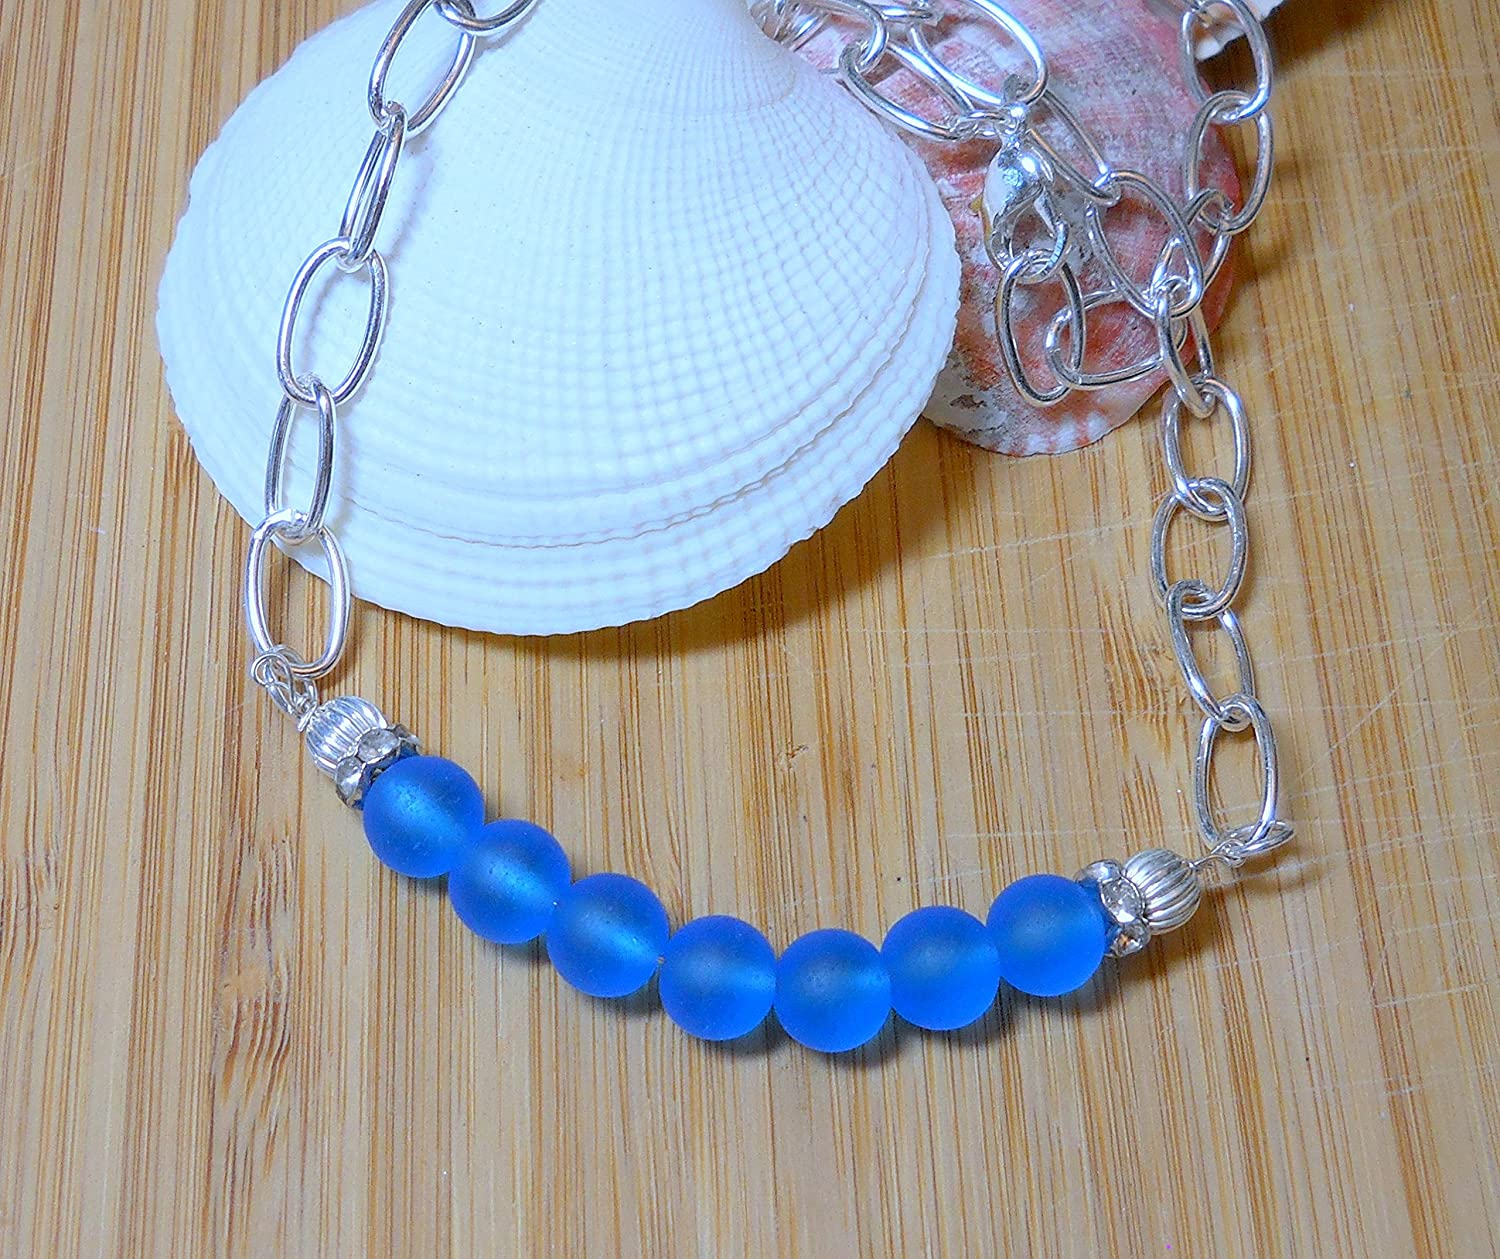 Blue sea glass necklace with chunky silver chain by BethExpressions